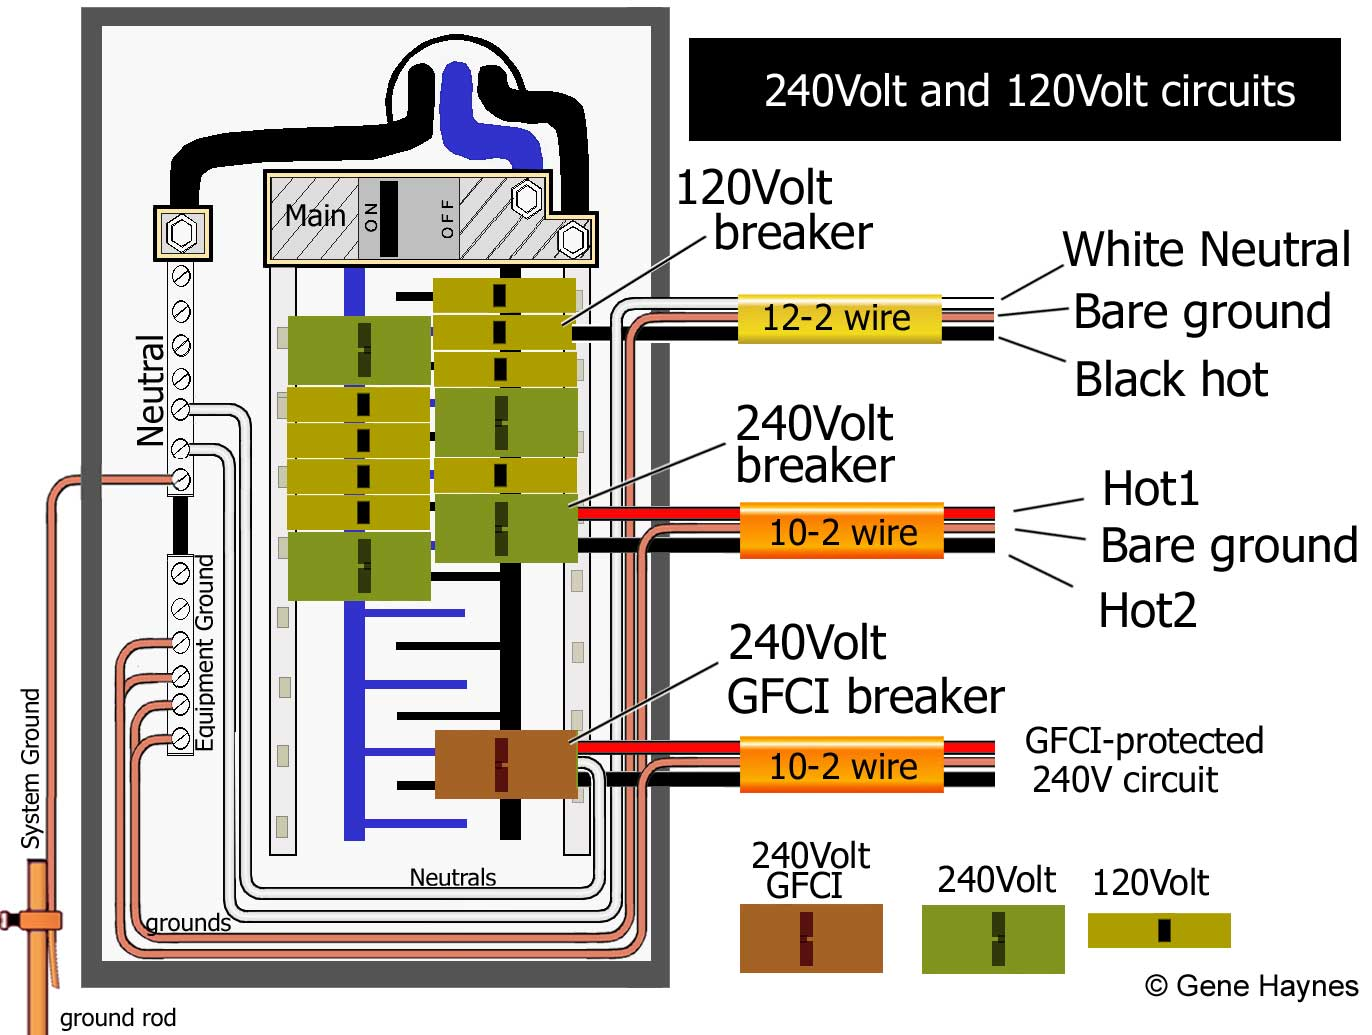 220v Breaker Wiring Diagram Circuit Schematic 3 Prong What Is X 2 Phase Gfci Sample Hot Tub Source Wire